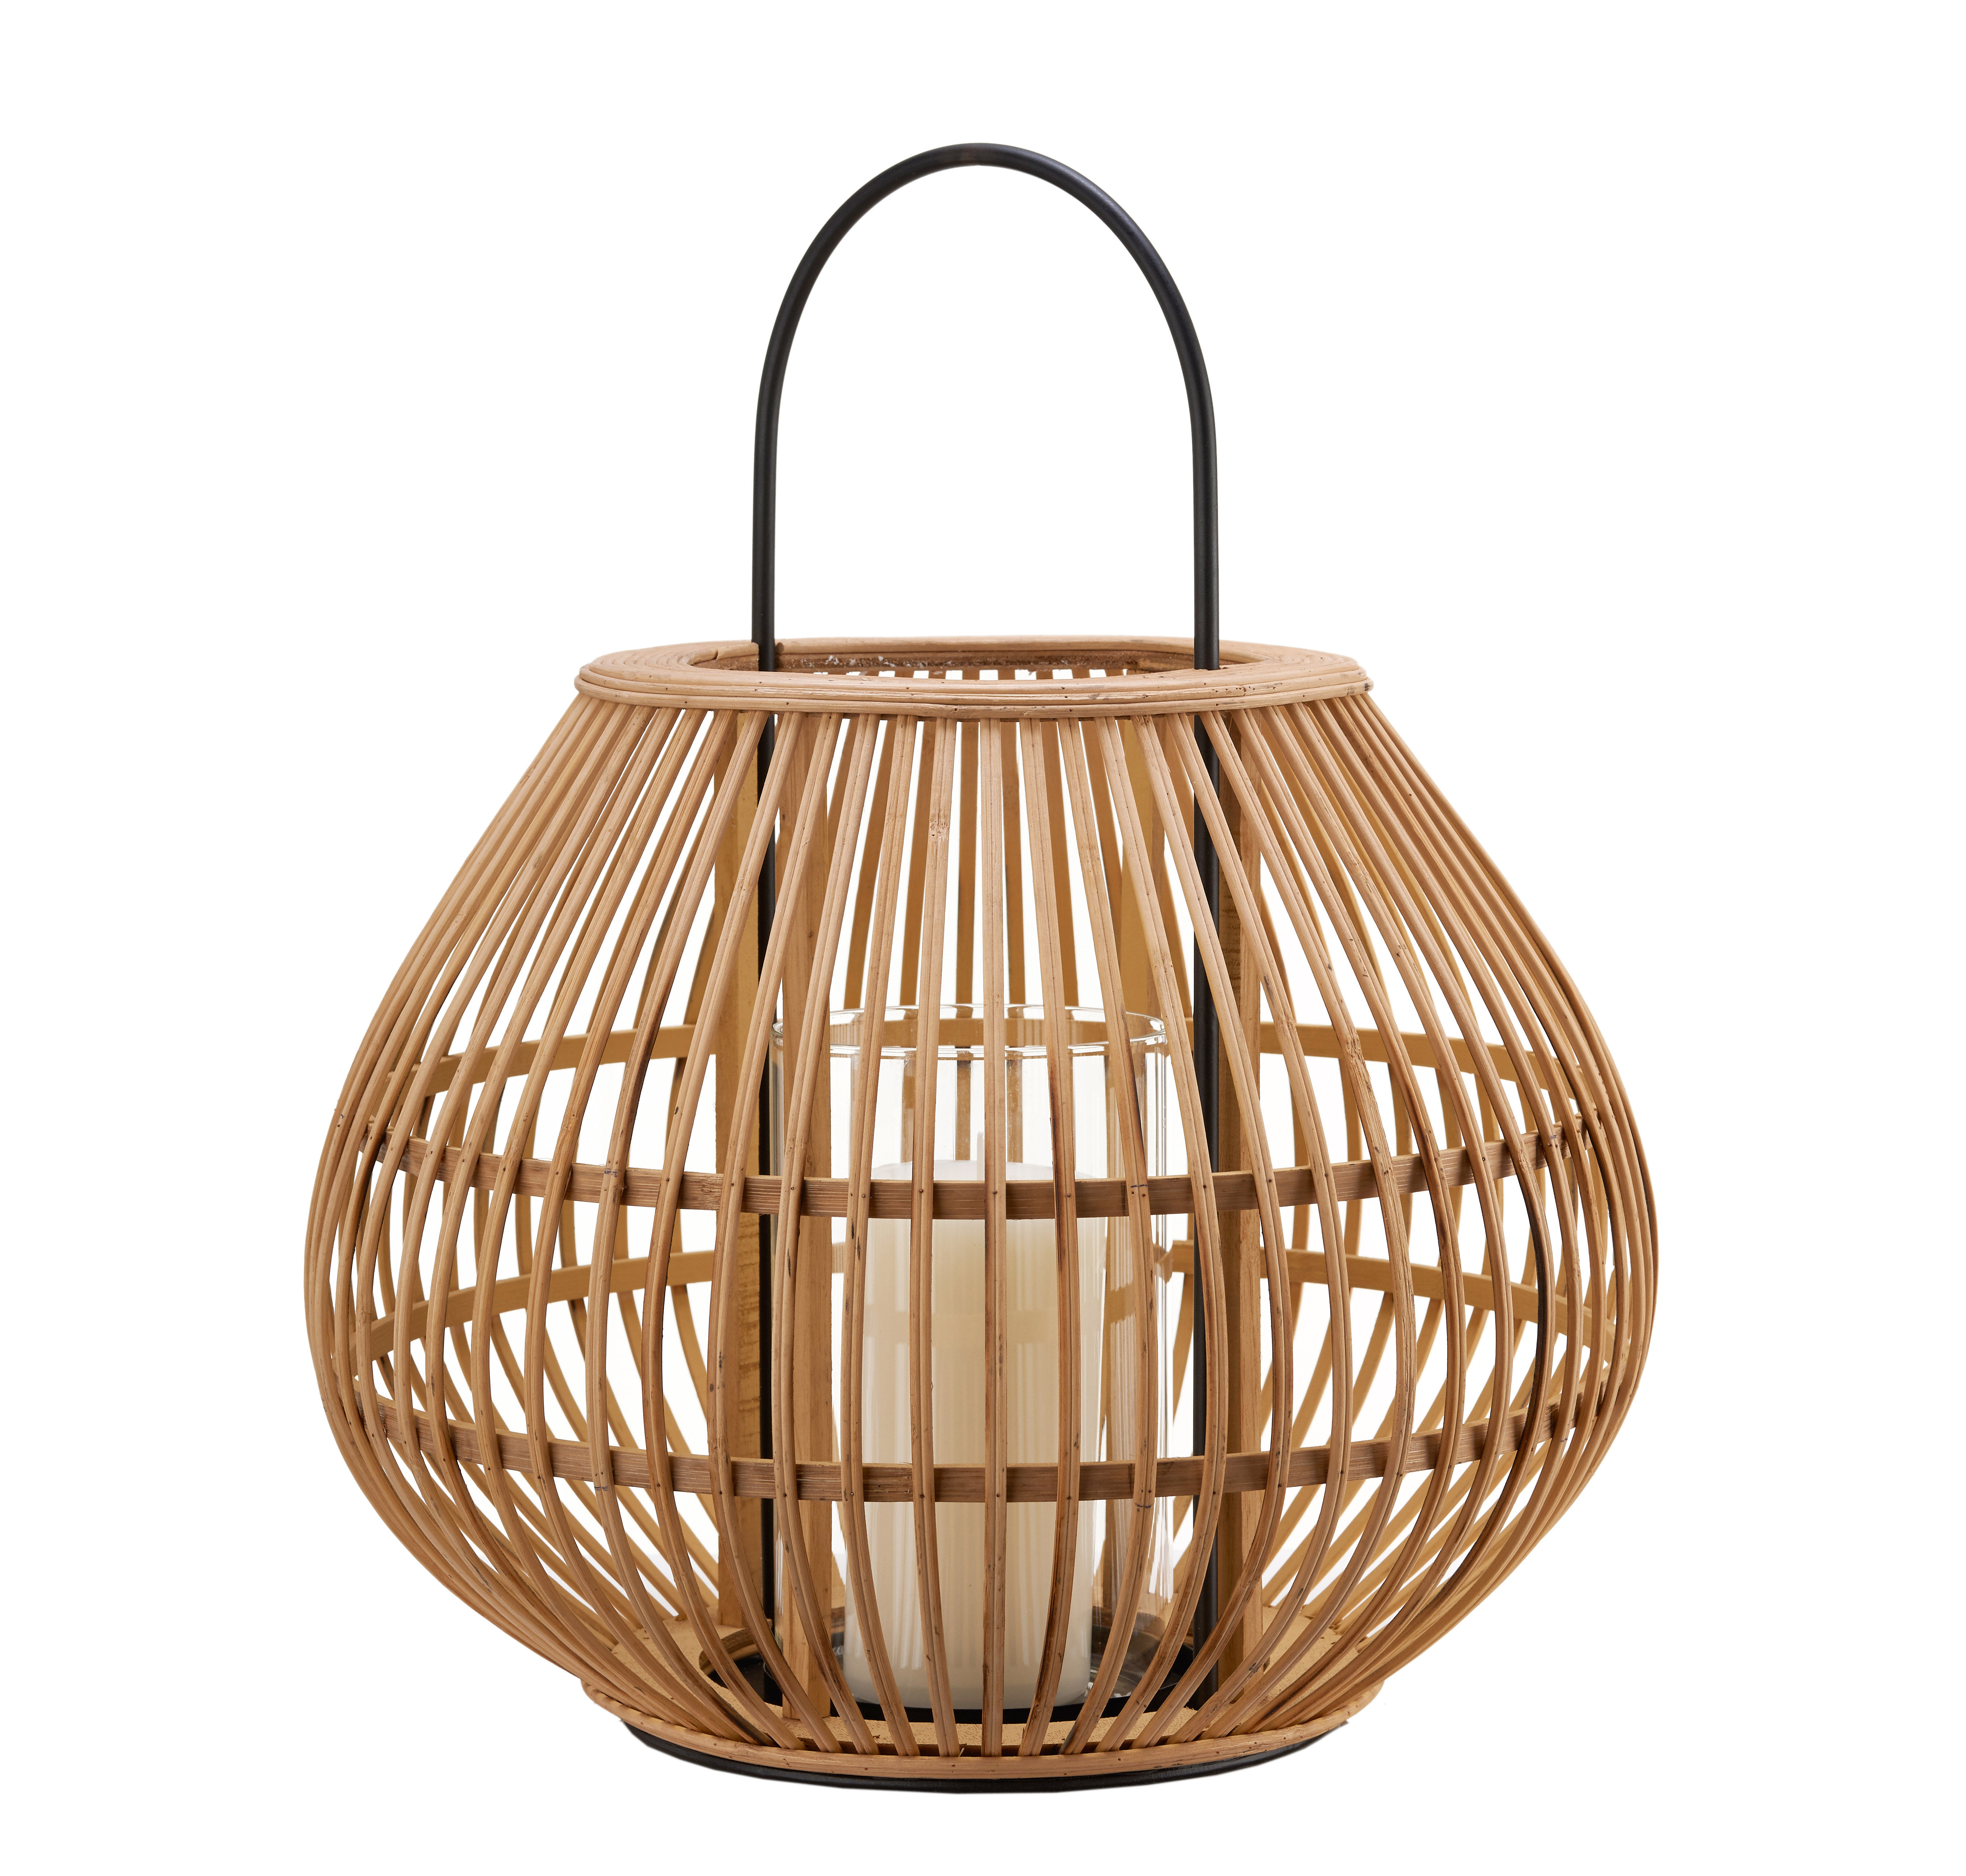 Outdoor - Ornaments & Accessories - Striped Apple Lantern - / Bamboo - H 46 cm by Pols Potten - Natural - Bamboo, Glass, Iron